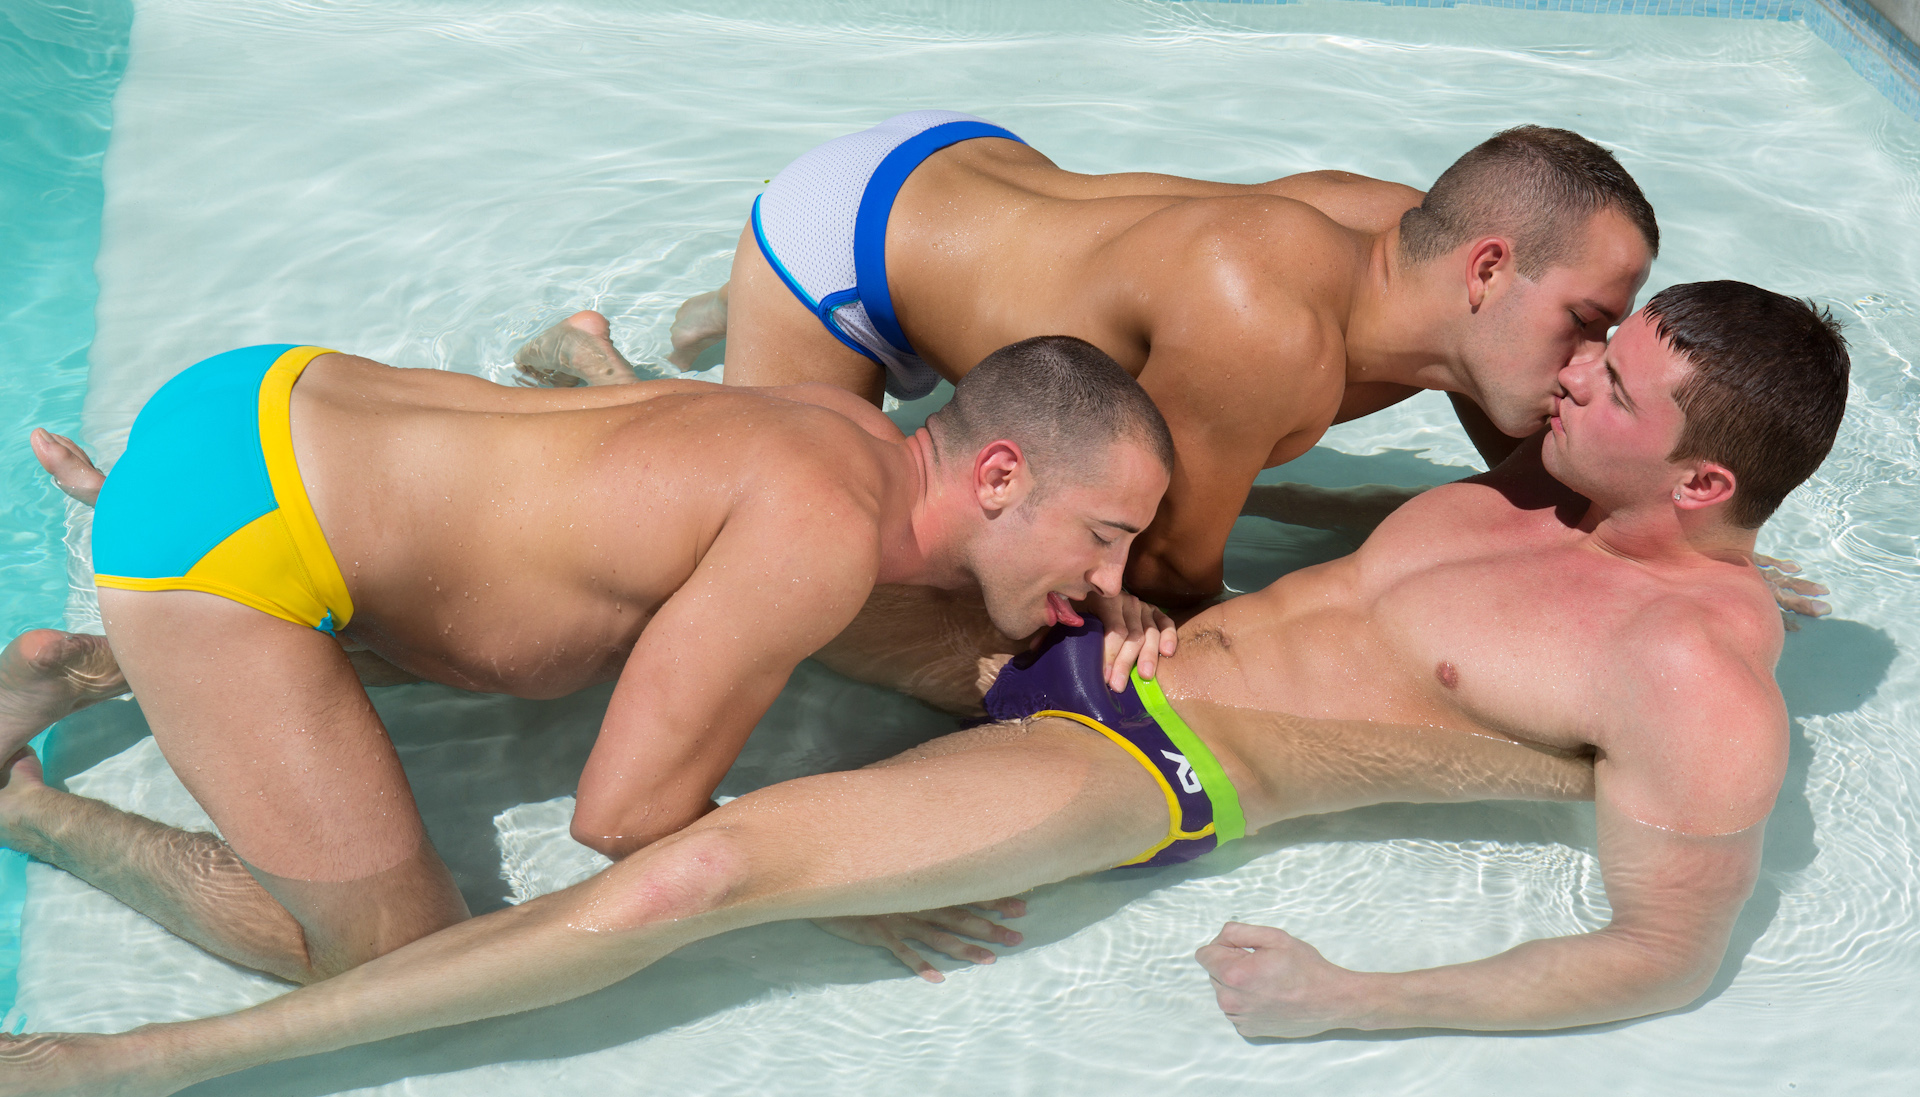 from Karson naked guys in the pool having porn